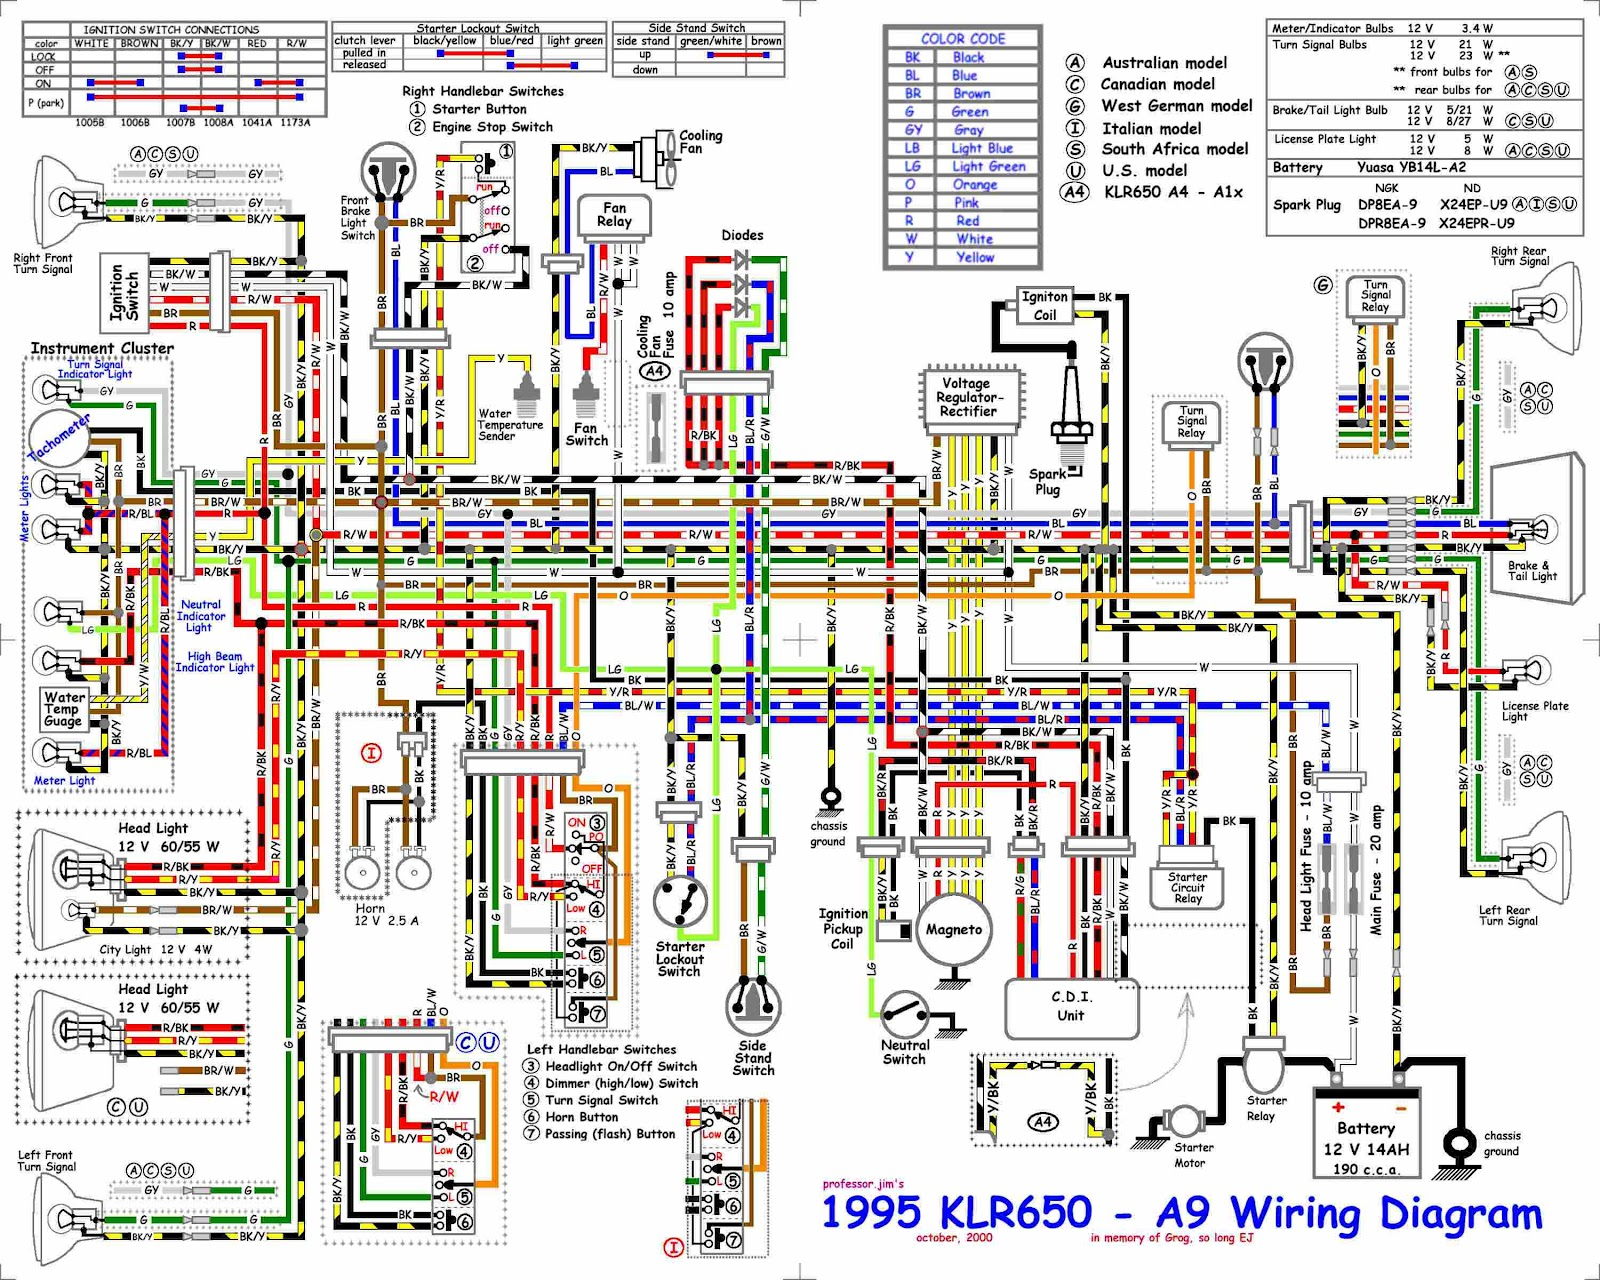 Kawasaki klr650 a9 1995 motorcycle electrical wiring diagram all about wiring diagrams